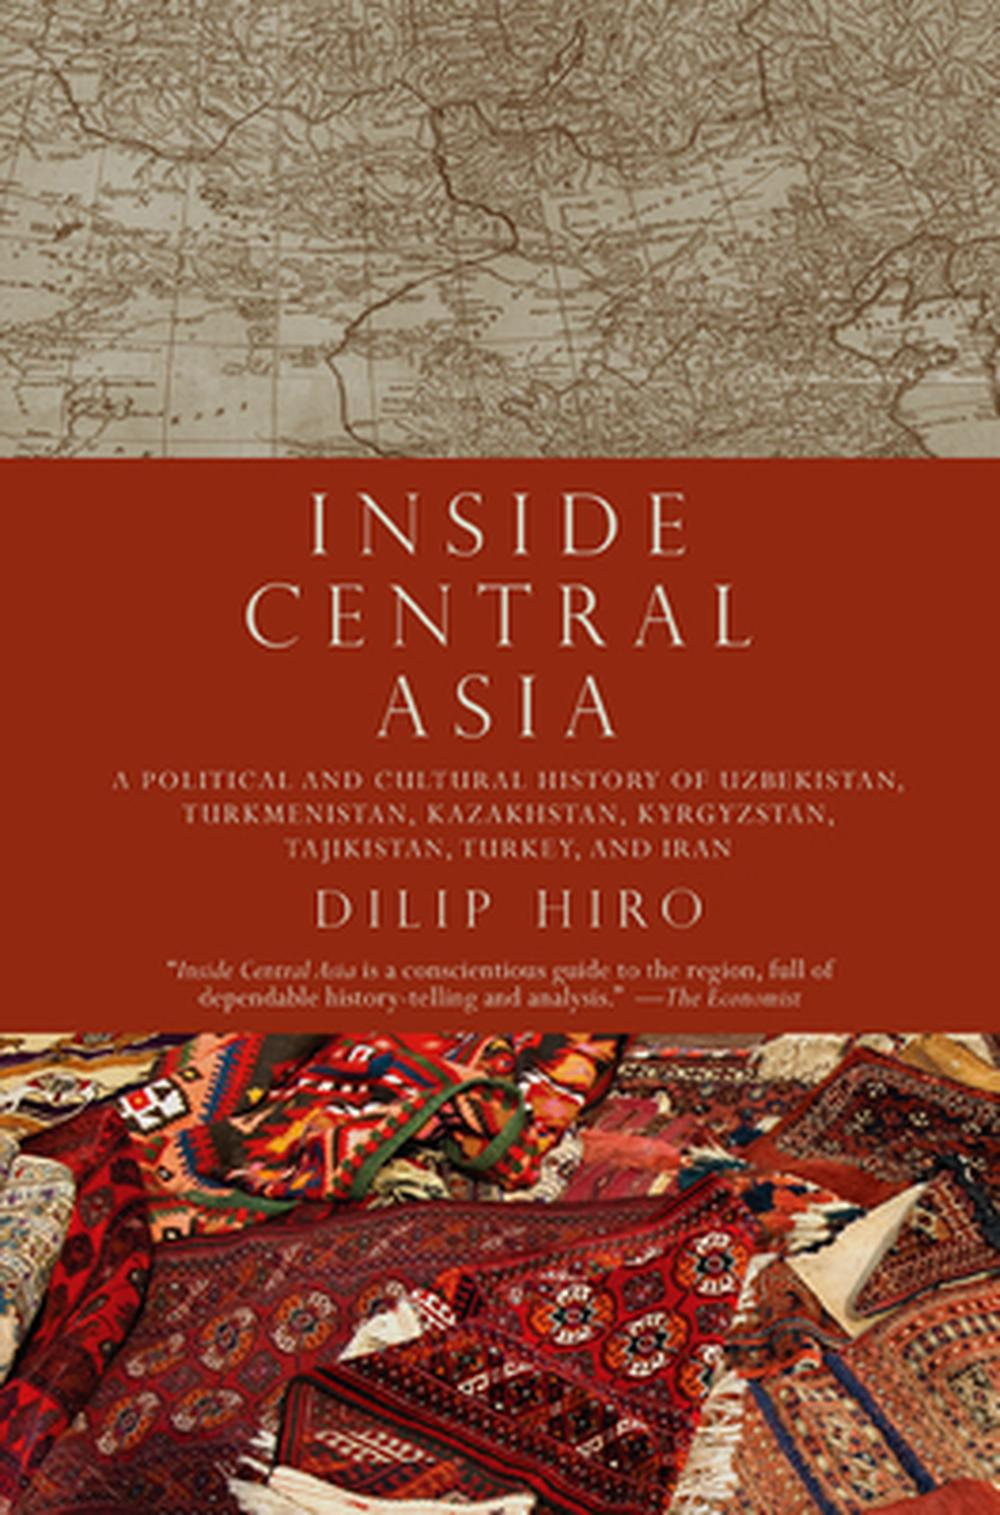 Inside Central Asia: A Political and Cultural History of Uzbekistan, Turkmenistan, Kazakhstan, Kyrgyzstan, Tajikistan, Turkey, and Iran by Dilip Hiro, ISBN: 9781590203330